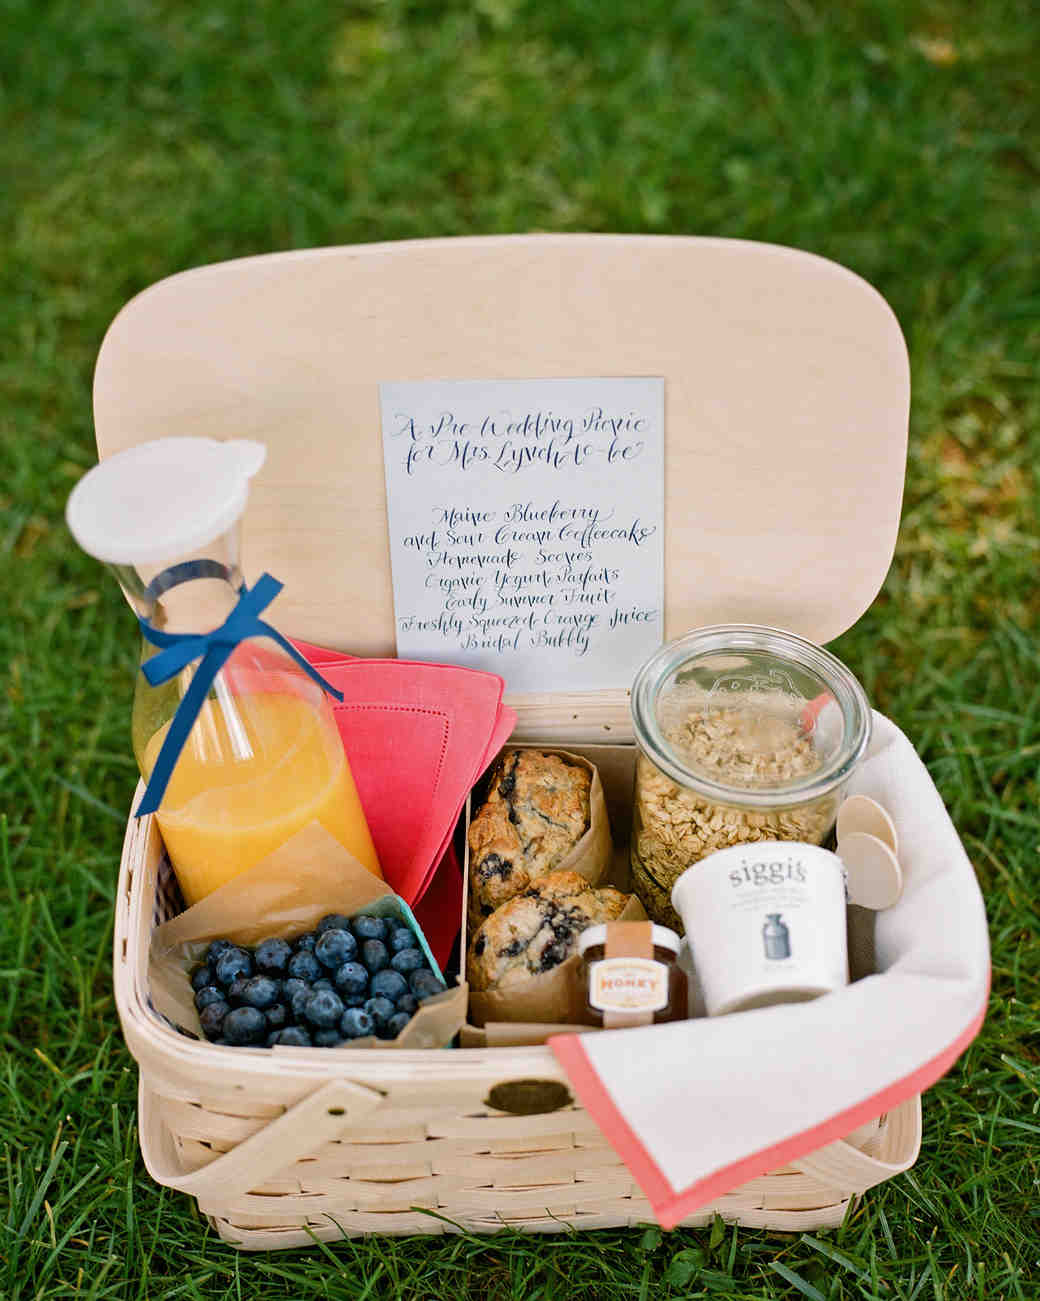 Picnic Decor Picnic Inspired Wedding Ideas Martha Stewart Weddings